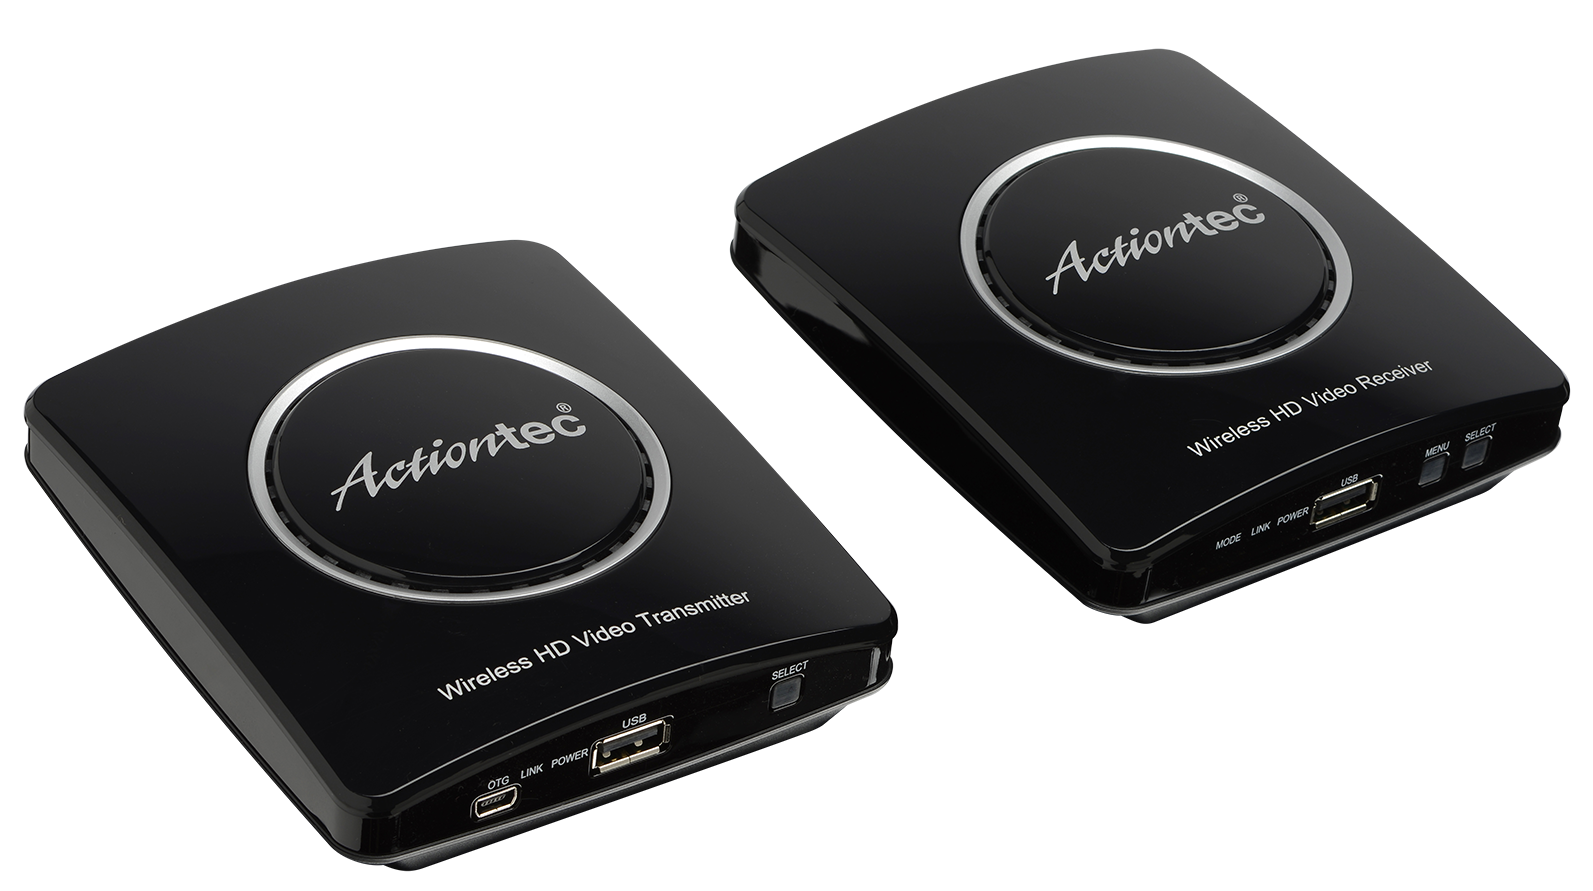 Amazon Actiontec MWTV2KIT01 MyWirelessTV2 Wireless HD Video